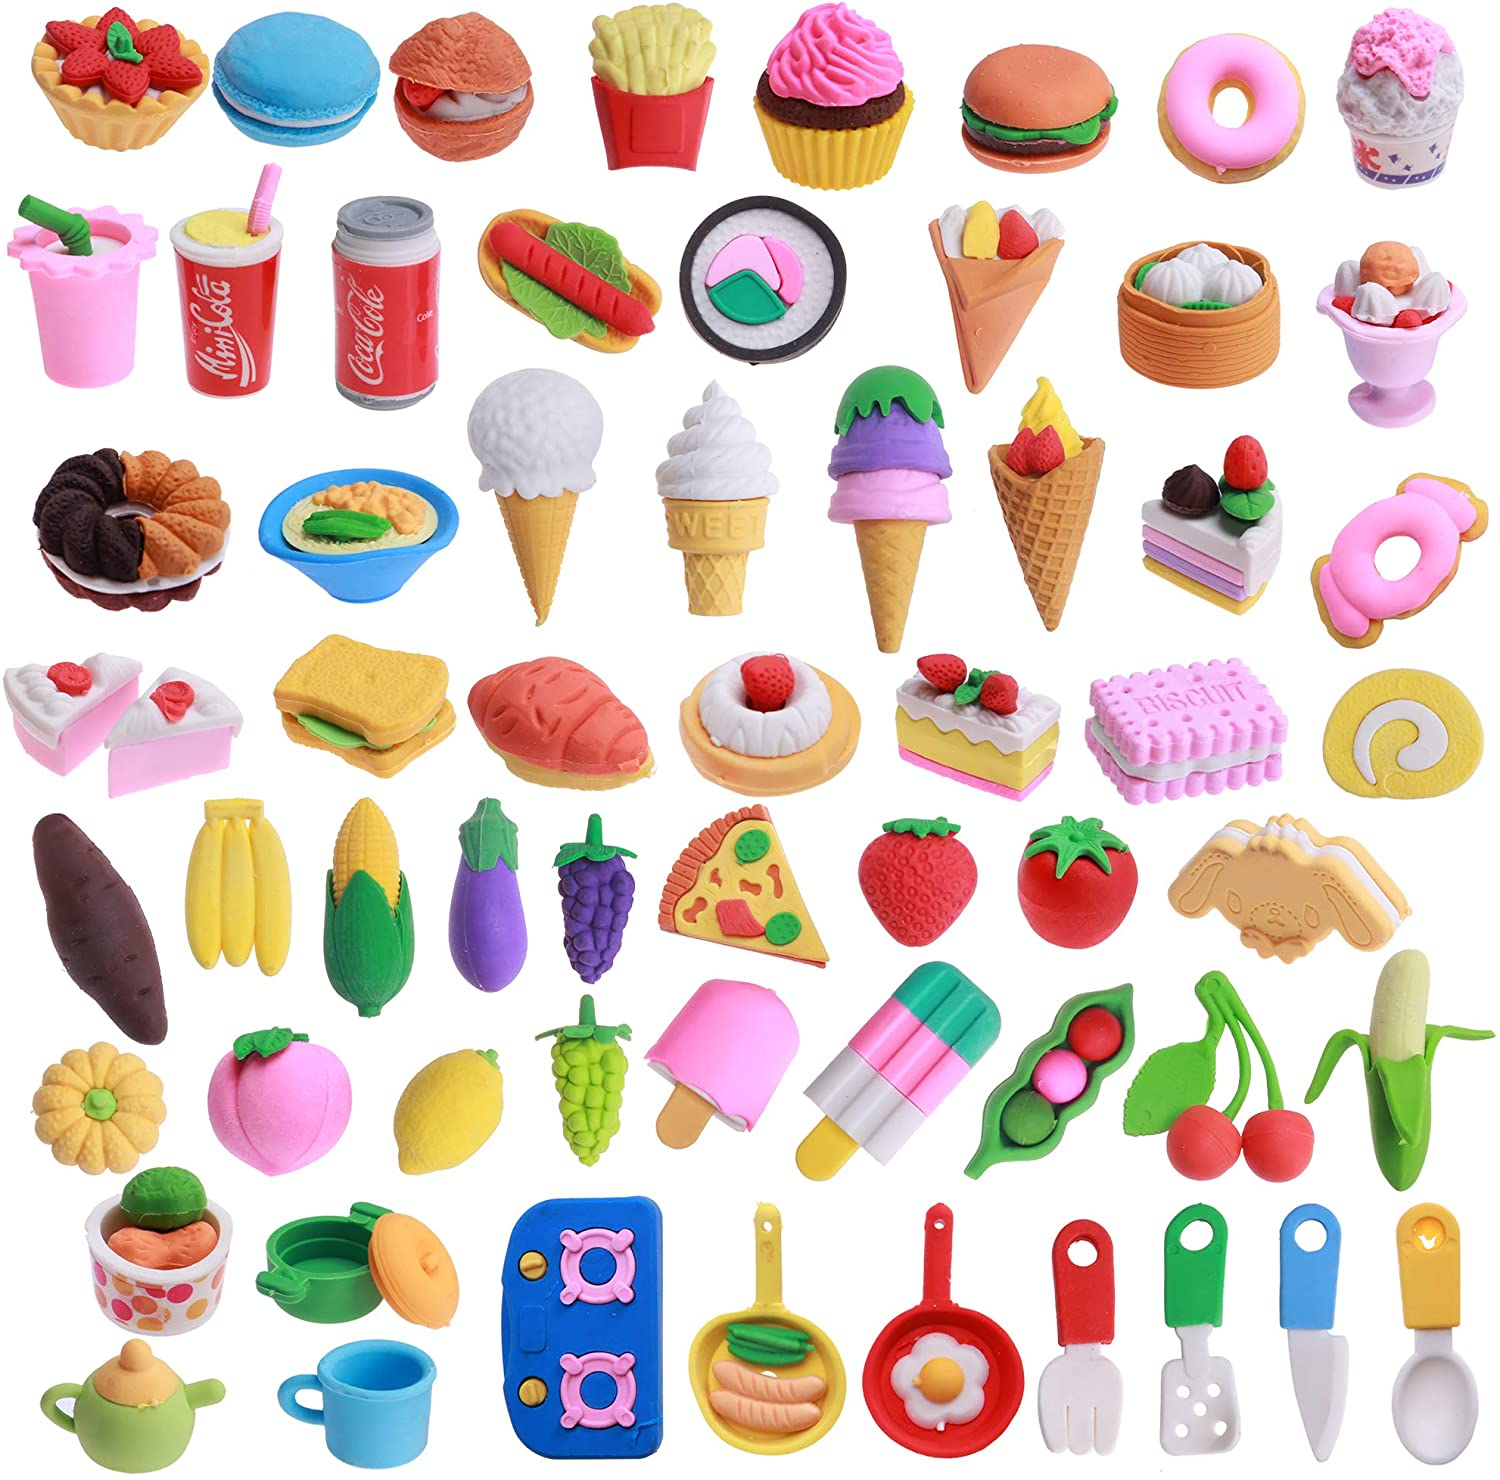 Greentime 60 Food Erasers, Puzzle Erasers Assembly Desert Erasers 3D Mini Erasers for Barbie Food Classroom Supplies Games Prizes Carnival Gifts